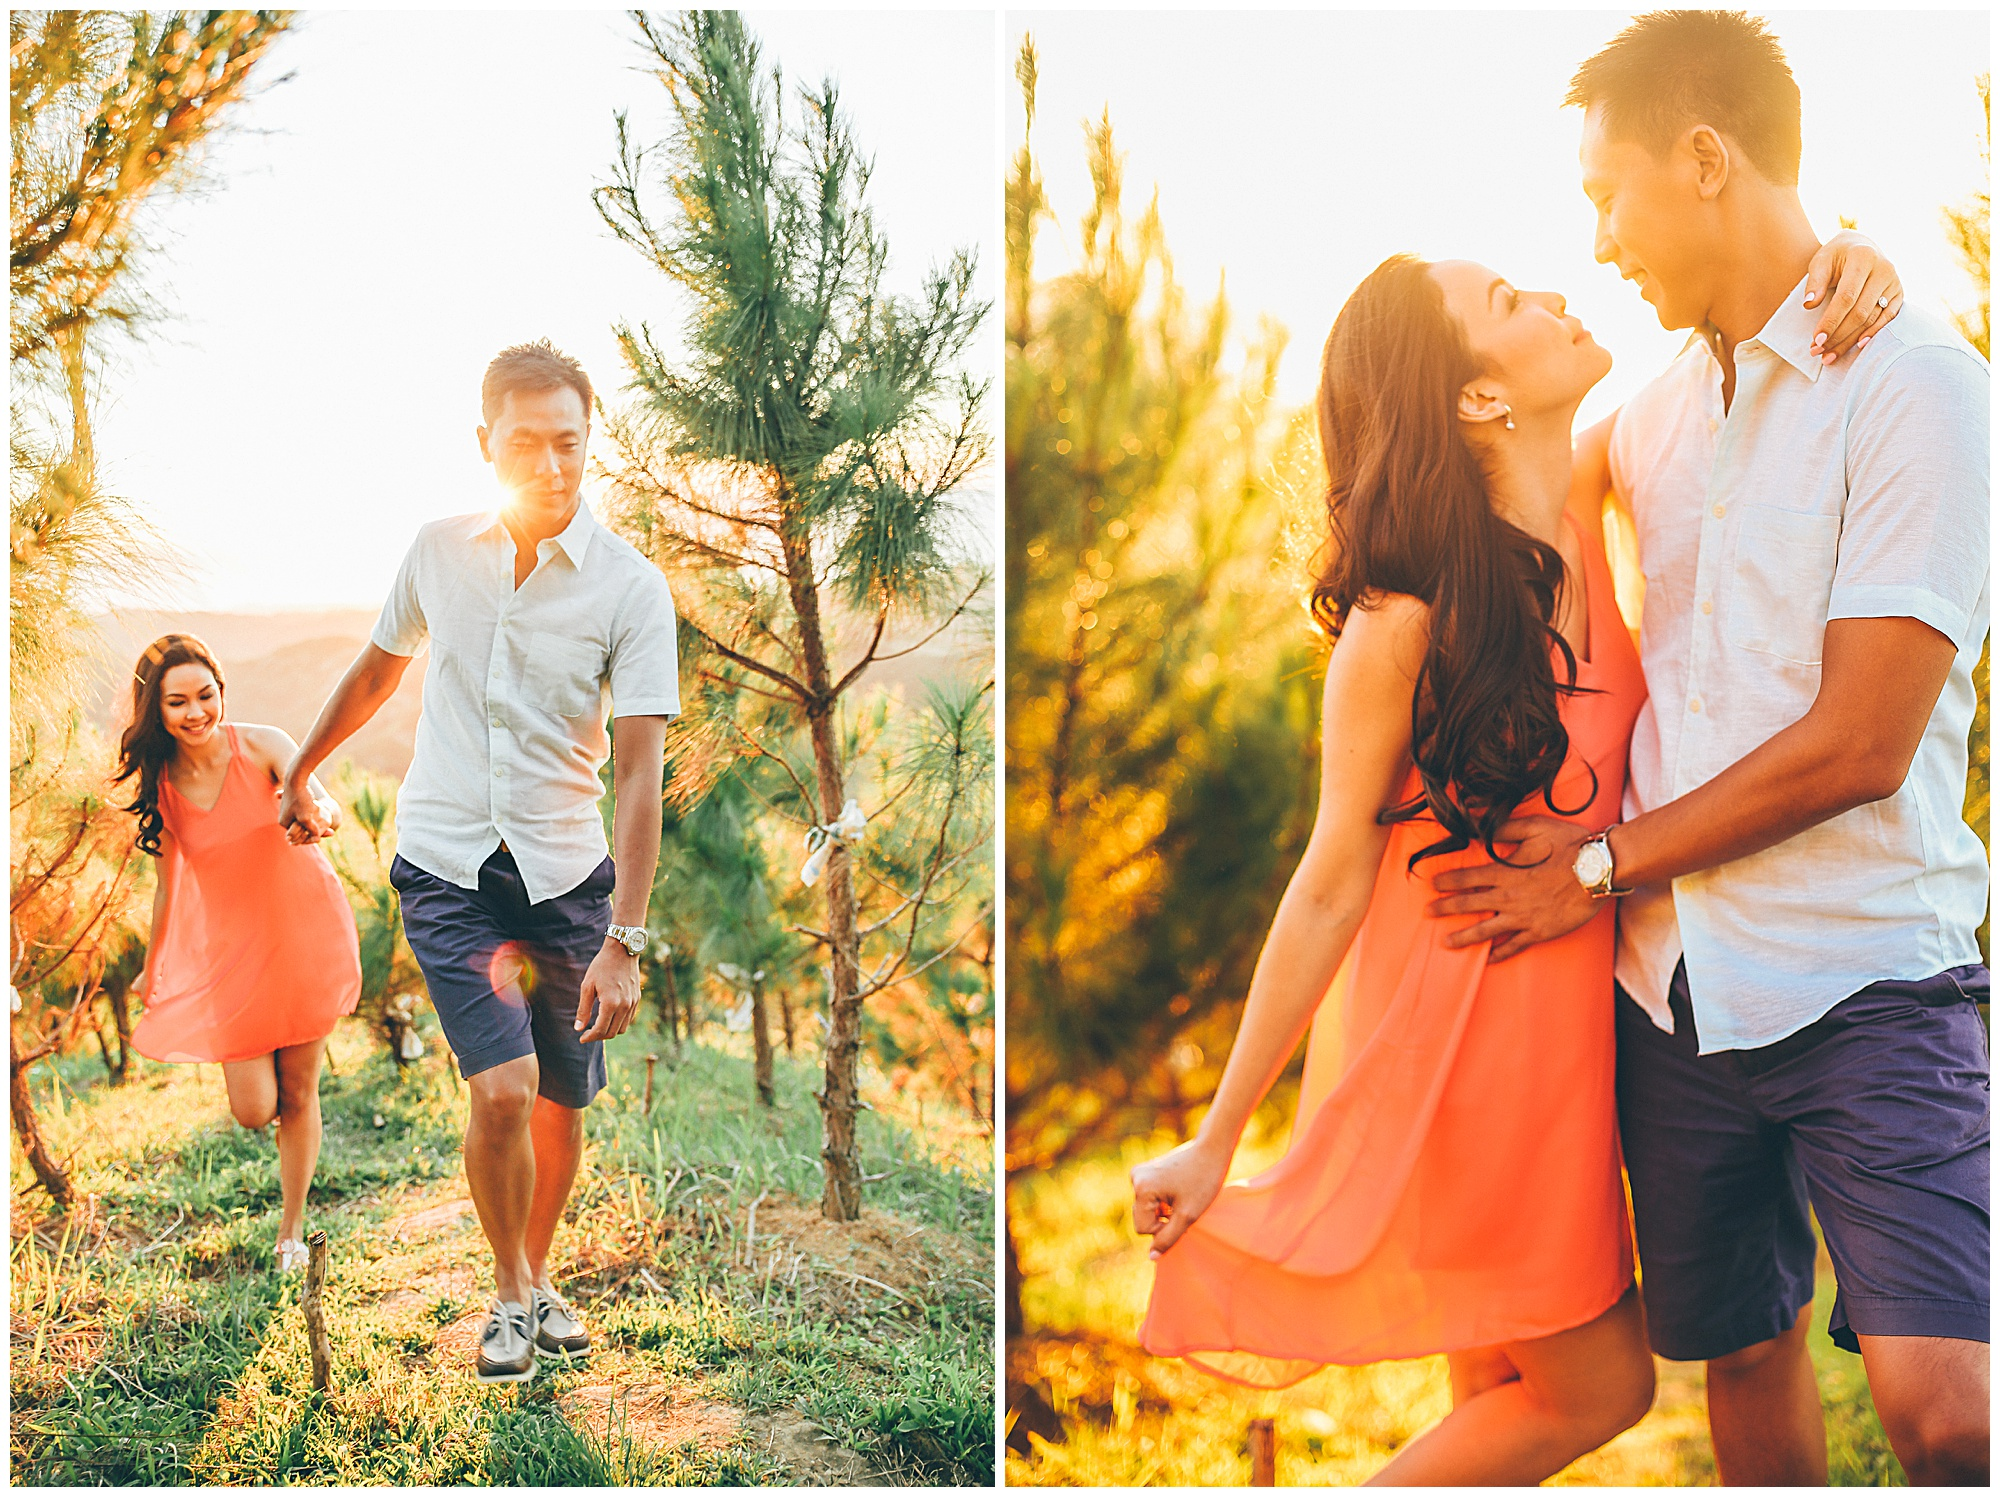 Pine Tree Mountain Busay Mountains Engagement Wedding Photographer Bohol Cebu Philippines_0013